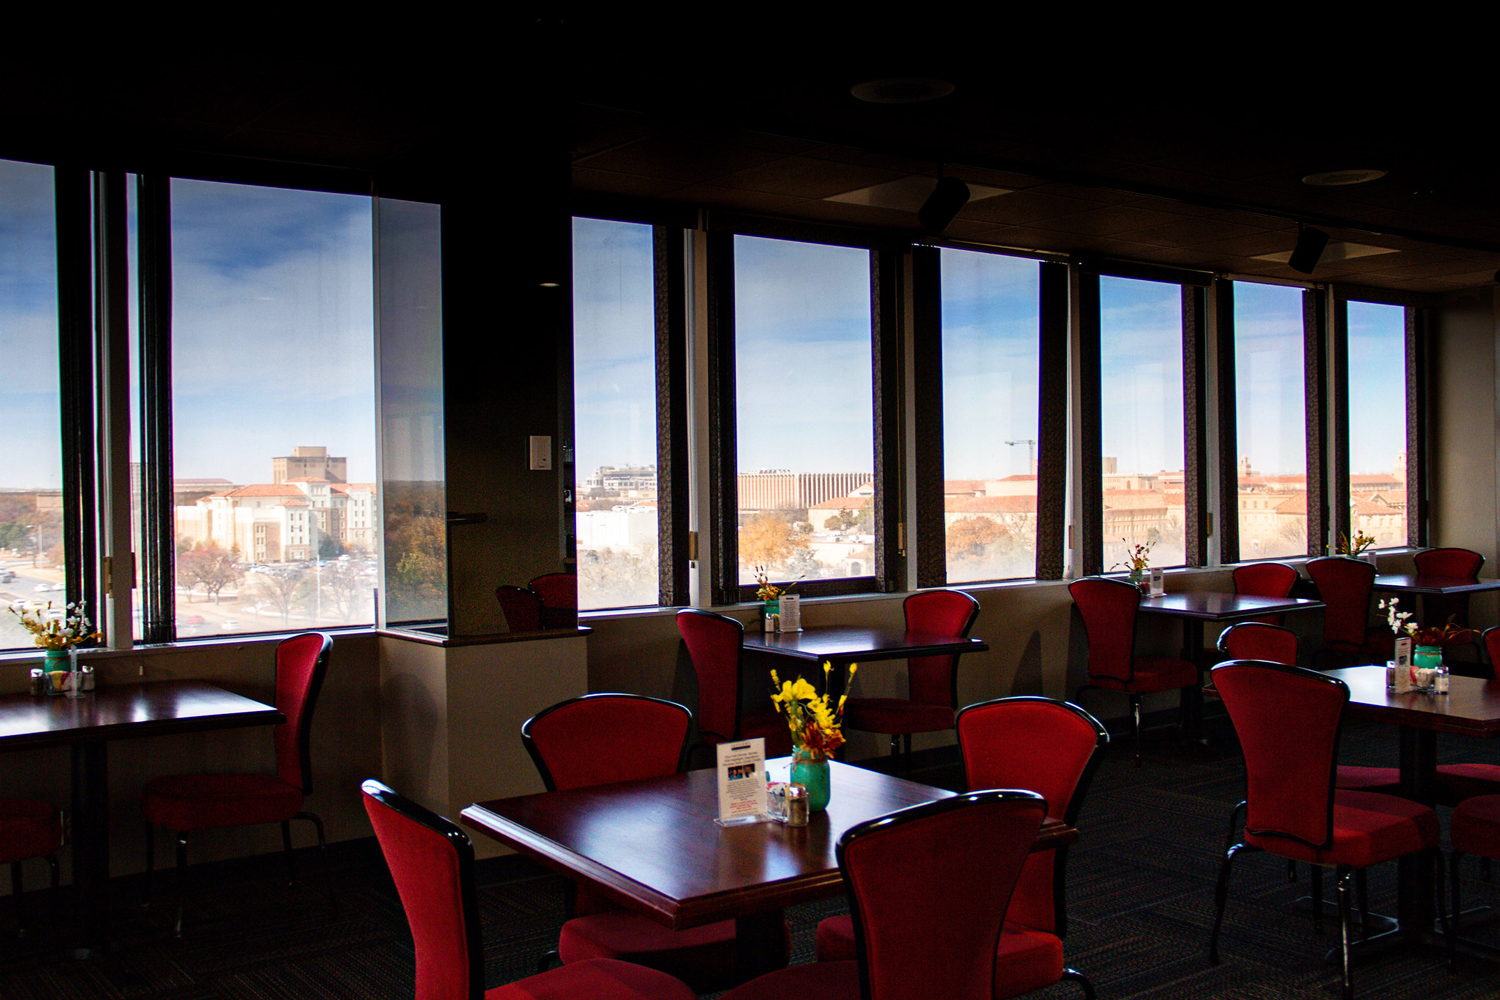 Skyviews Restaurant Launches To-Go Pizza Kitchen | Texas Tech Today